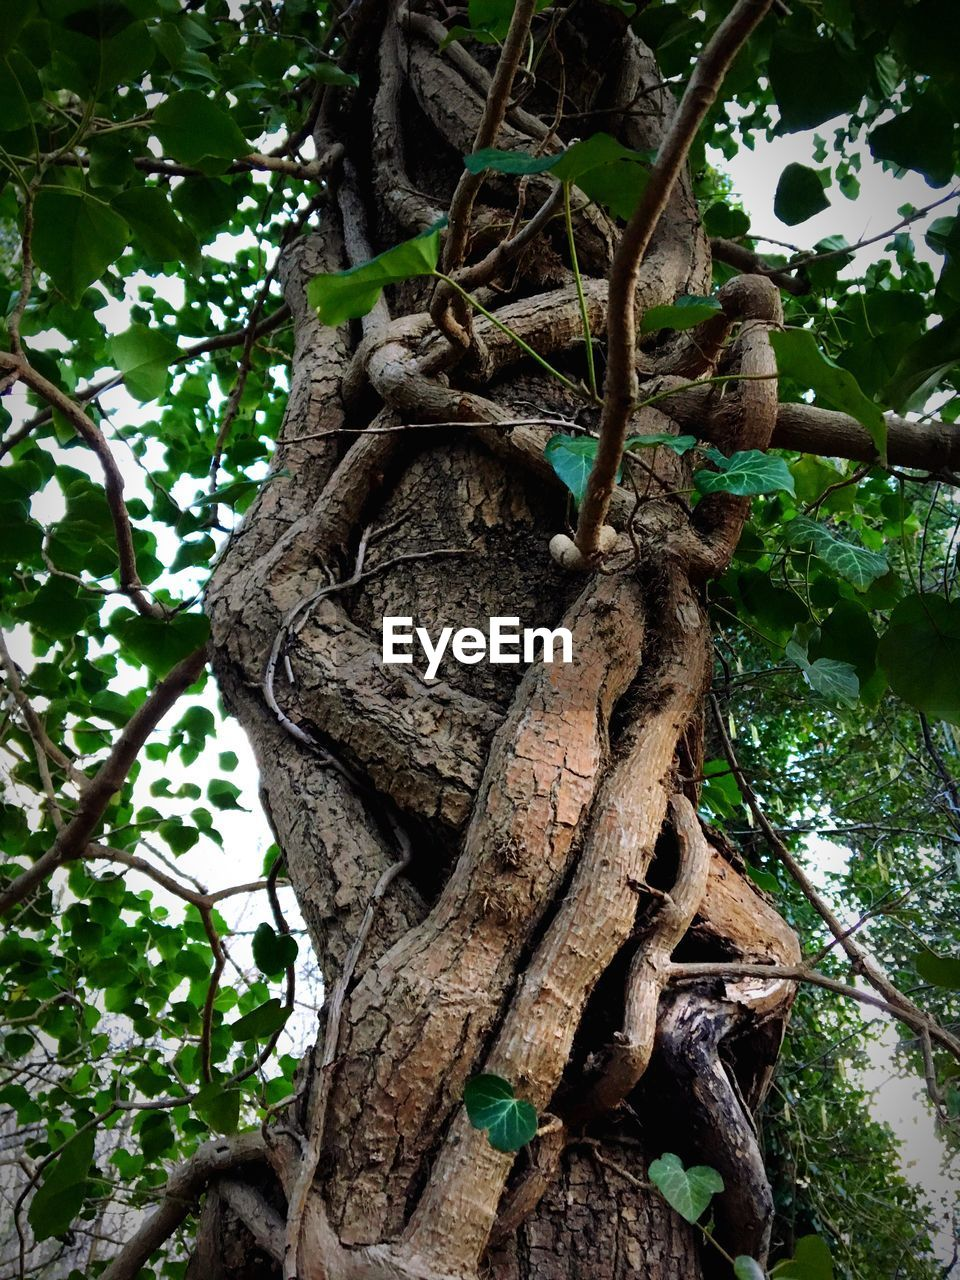 tree, tree trunk, branch, growth, nature, low angle view, no people, leaf, day, outdoors, root, forest, green color, beauty in nature, plant, close-up, dead tree